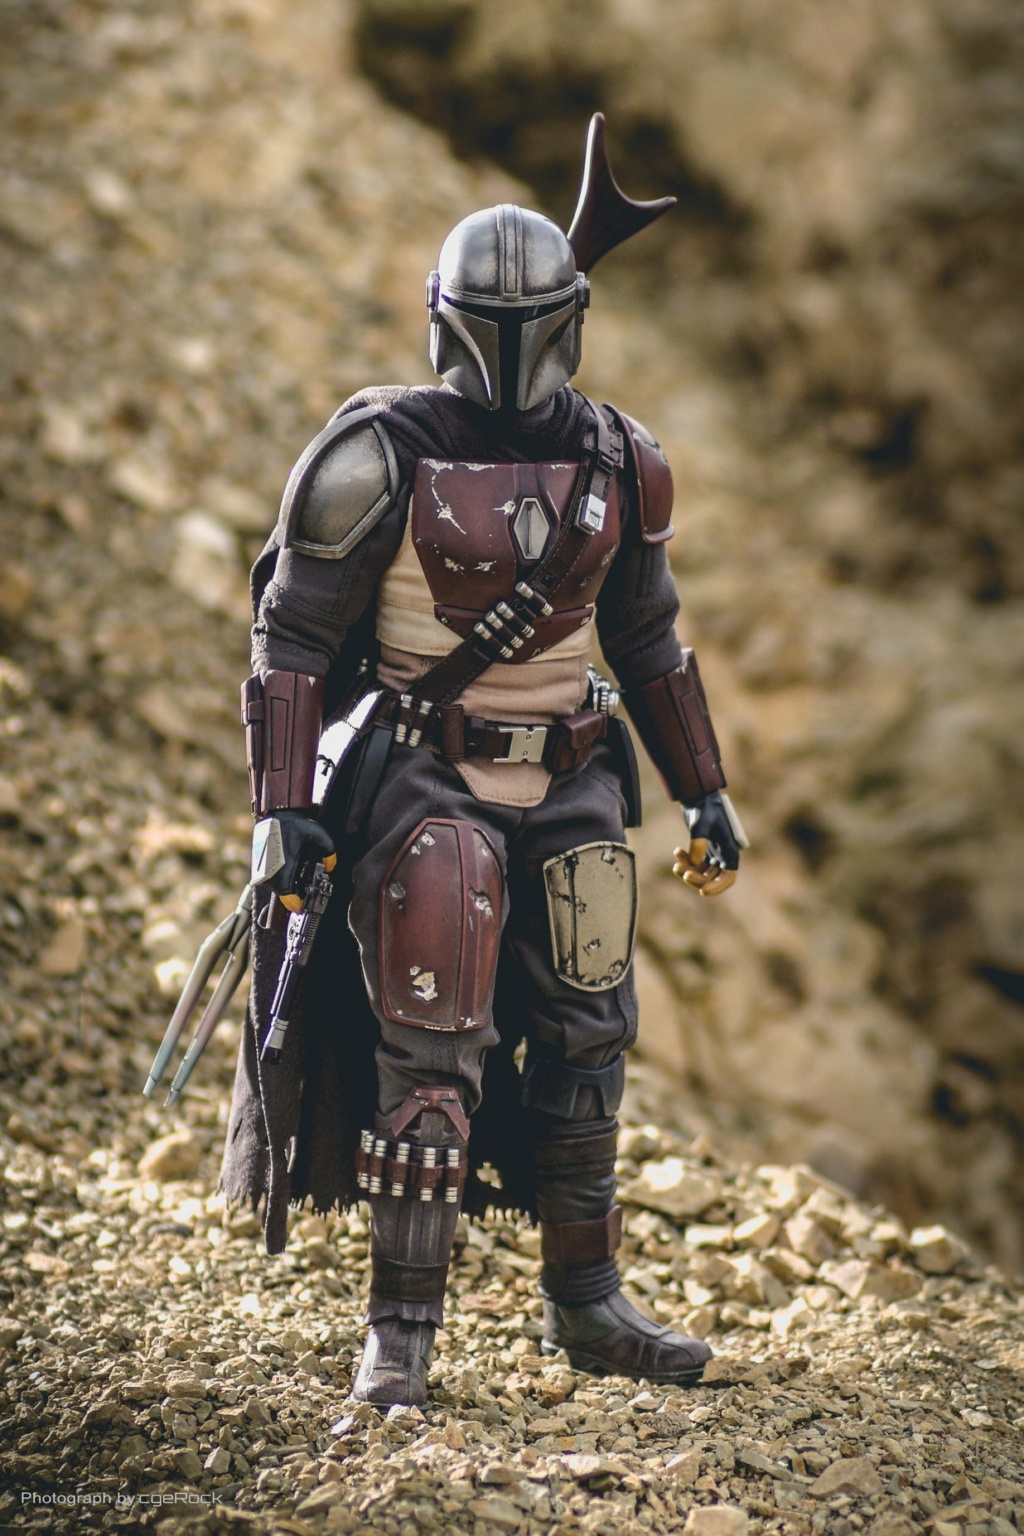 StarWars - NEW PRODUCT: HOT TOYS: THE MANDALORIAN -- THE MANDALORIAN 1/6TH SCALE COLLECTIBLE FIGURE 20126